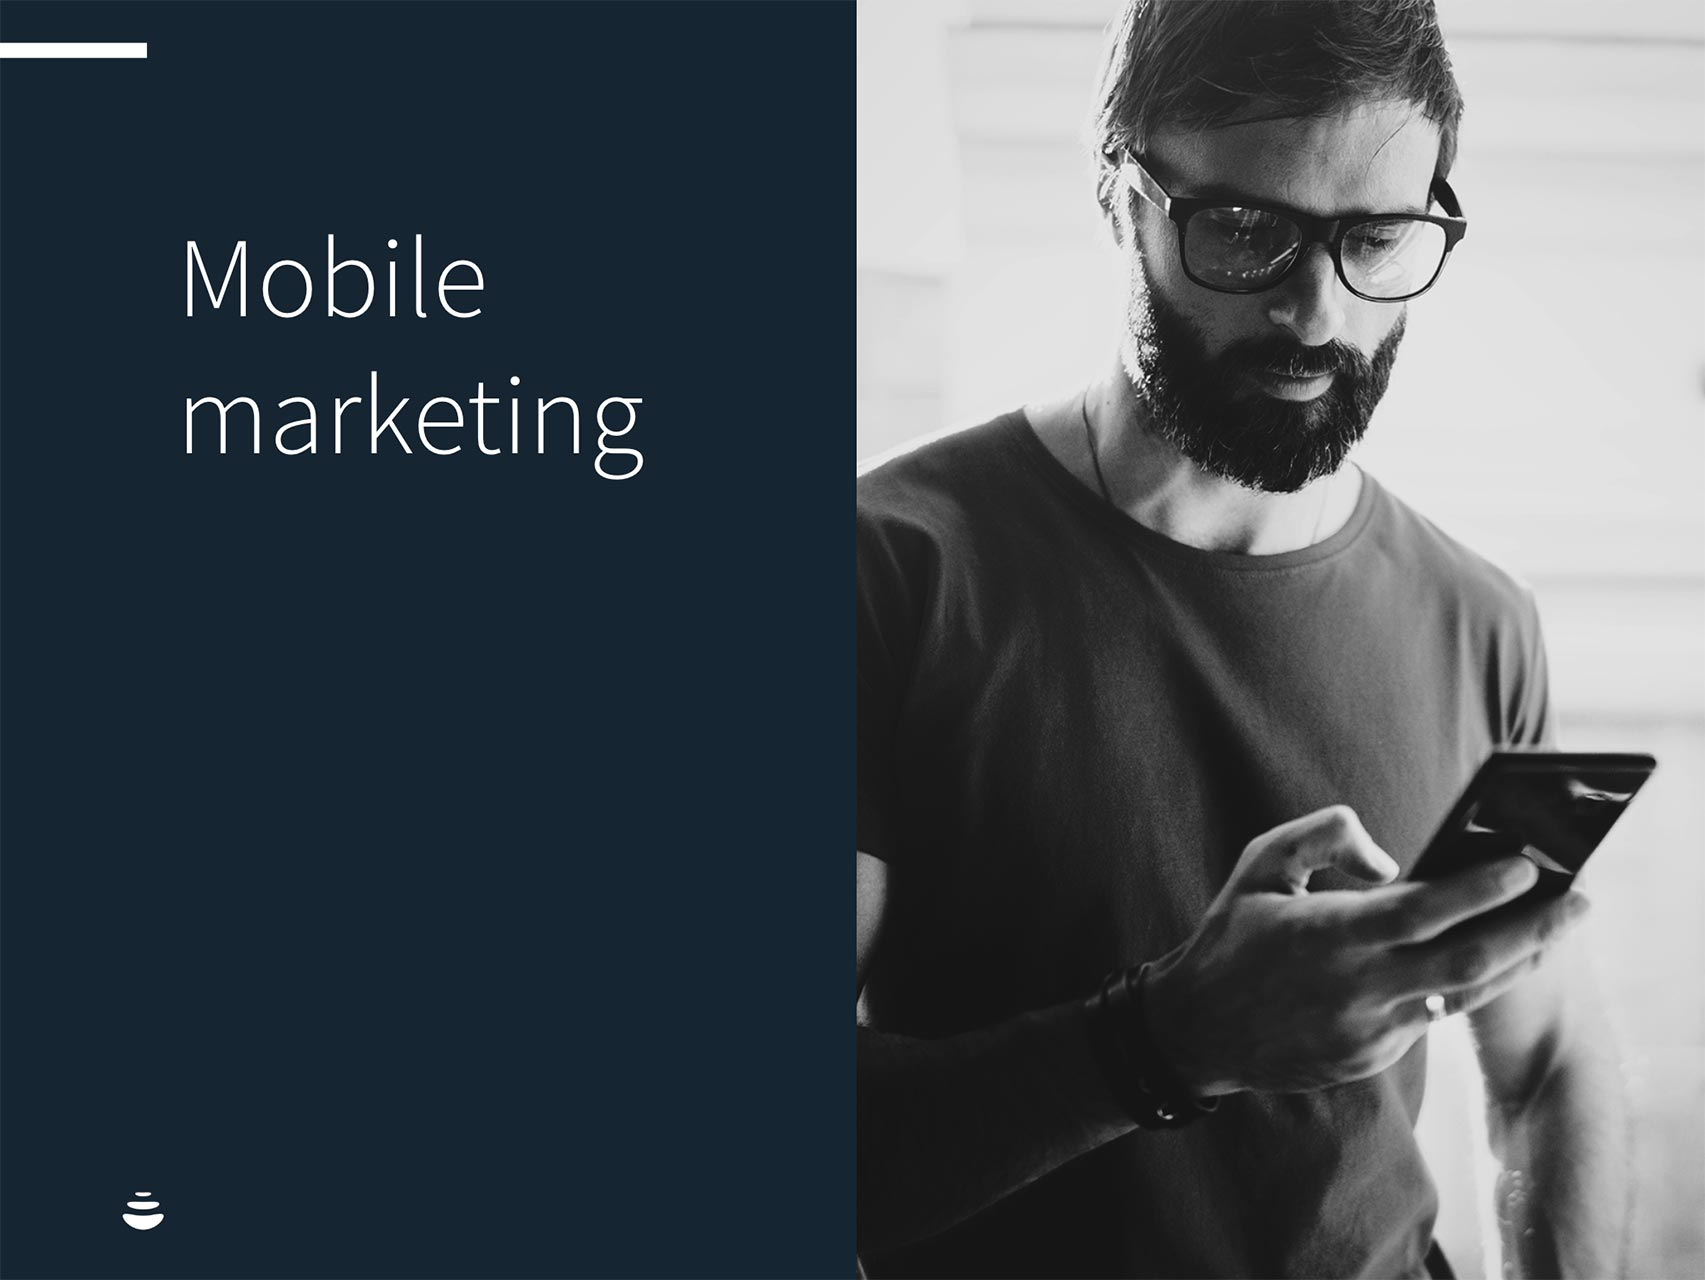 marketing trend 2019 2020, mobile marketing